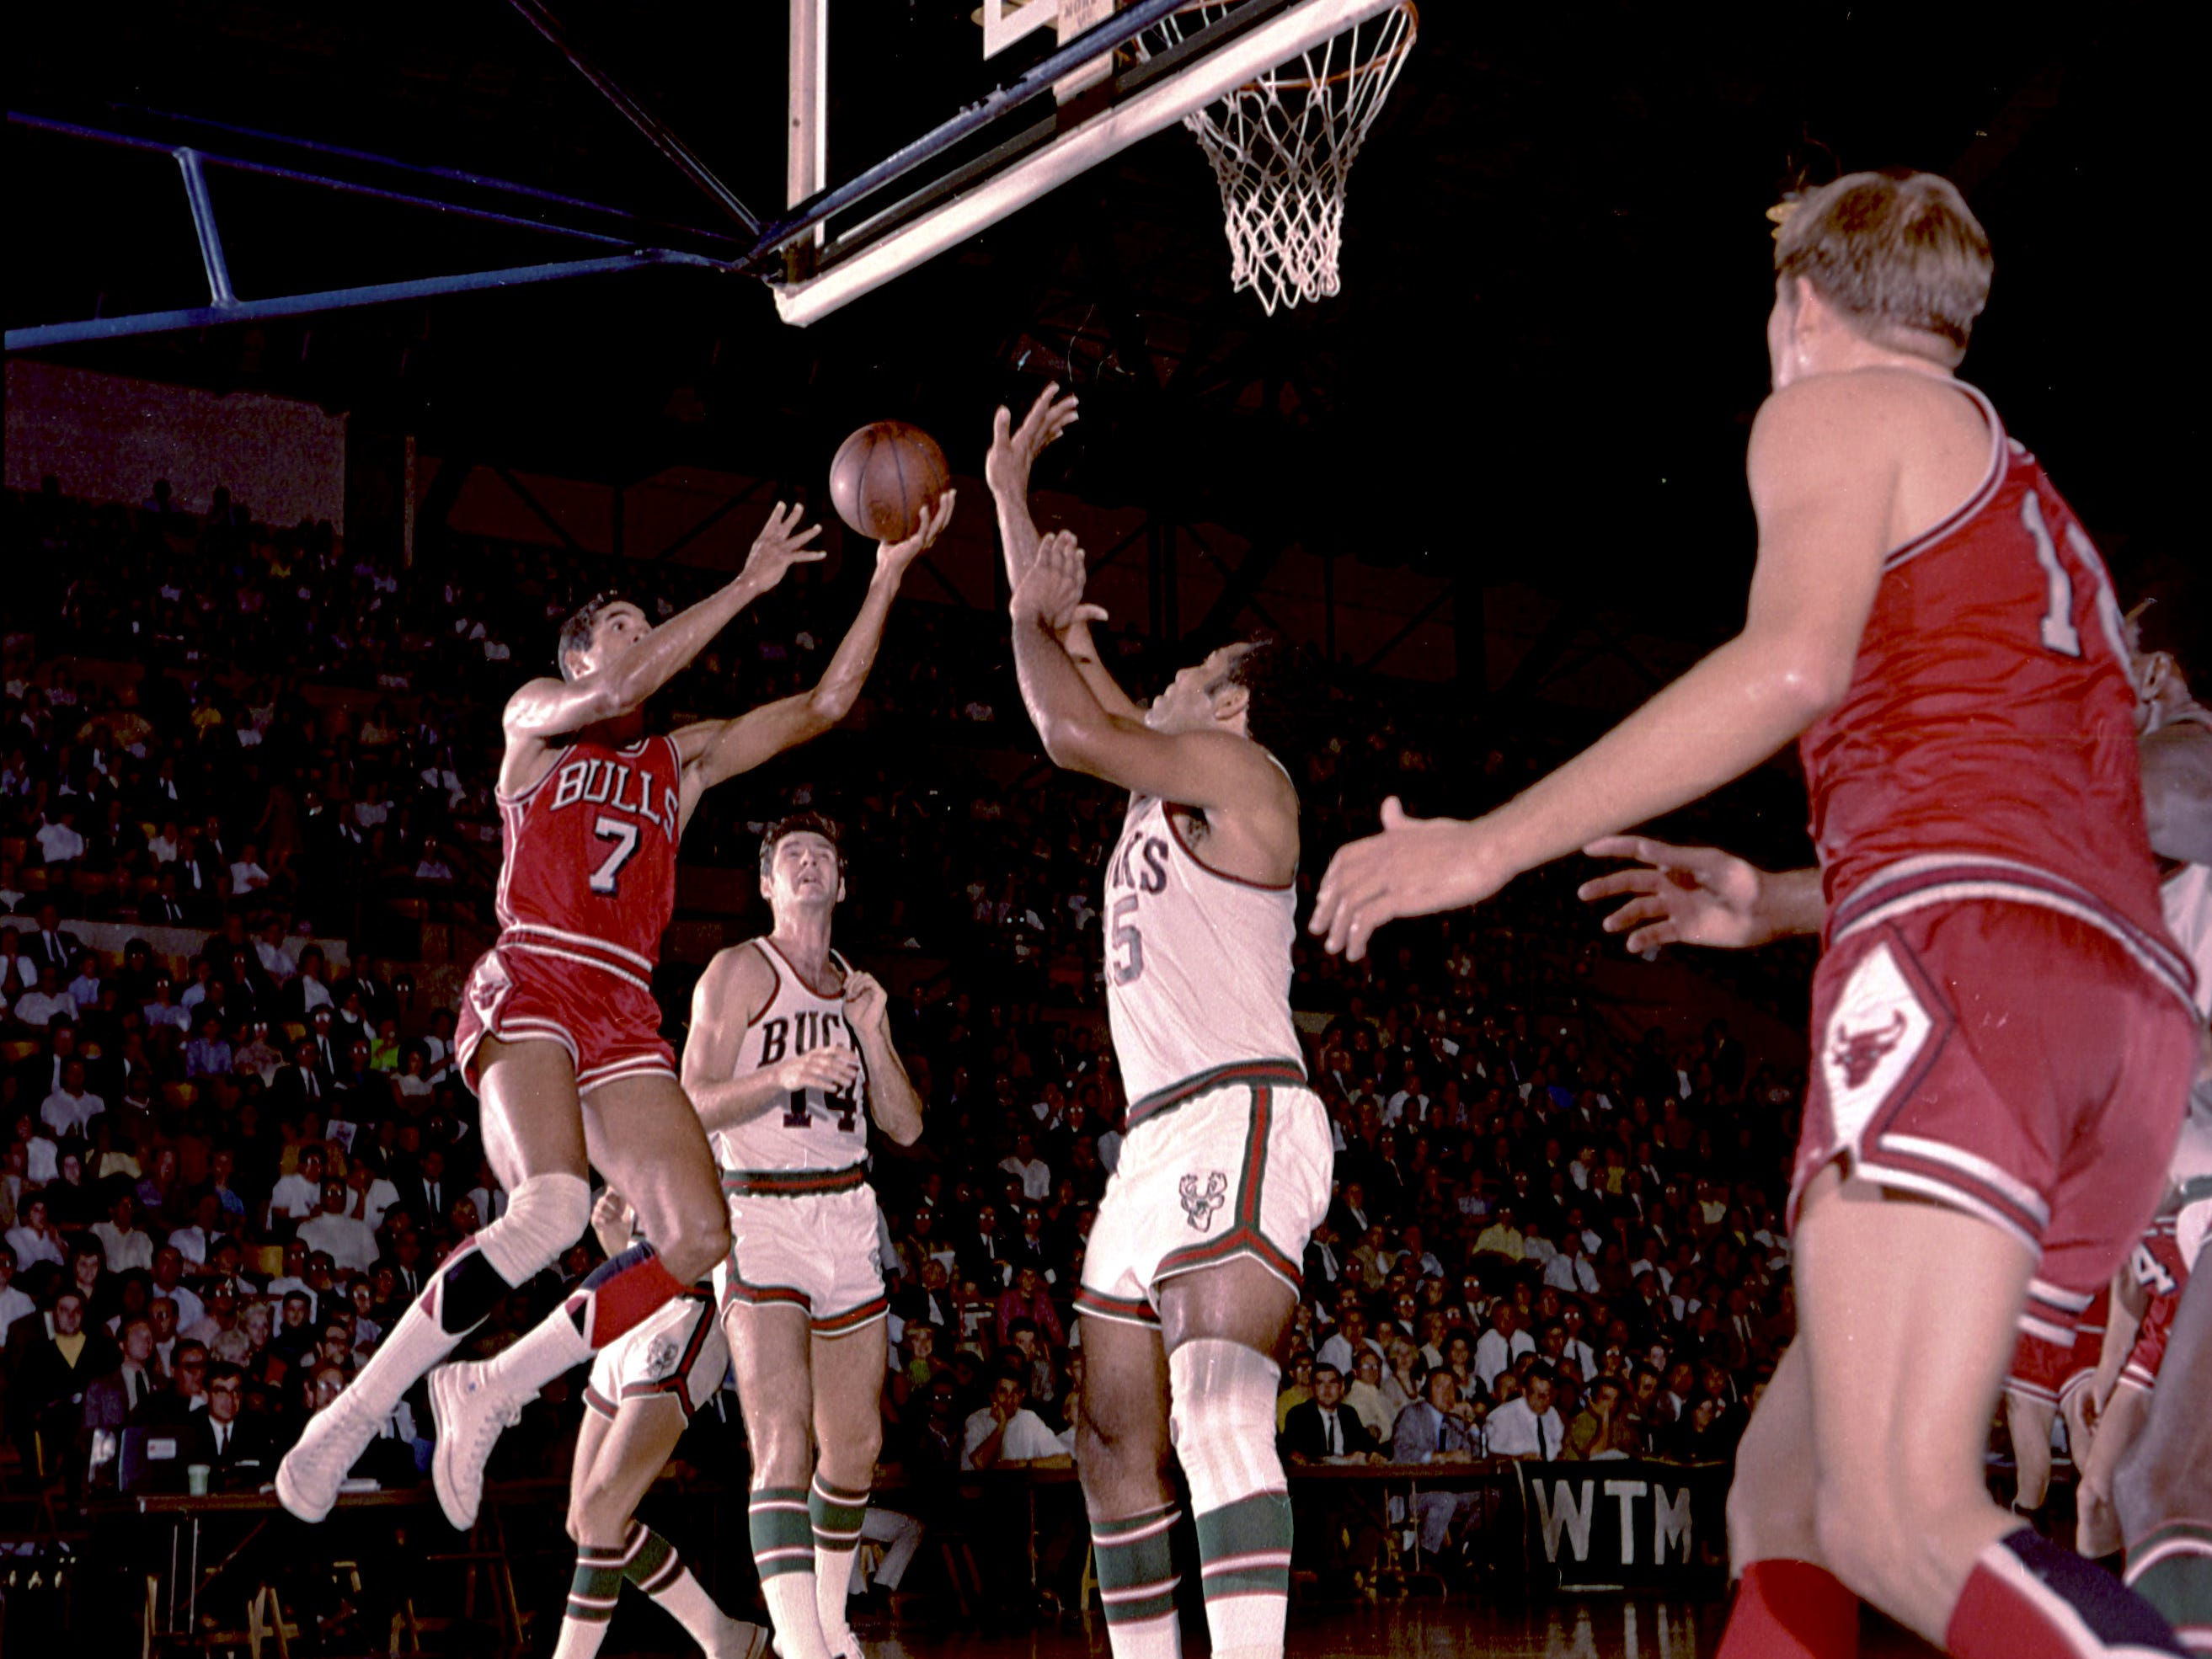 Milwaukee Bucks center Wayne Embry (15) goes up to block a shot by Chicago Bulls forward Jim Washington (7) during the Bucks' first-ever regular-season NBA game on Oct. 16, 1968, at the Milwaukee Arena.